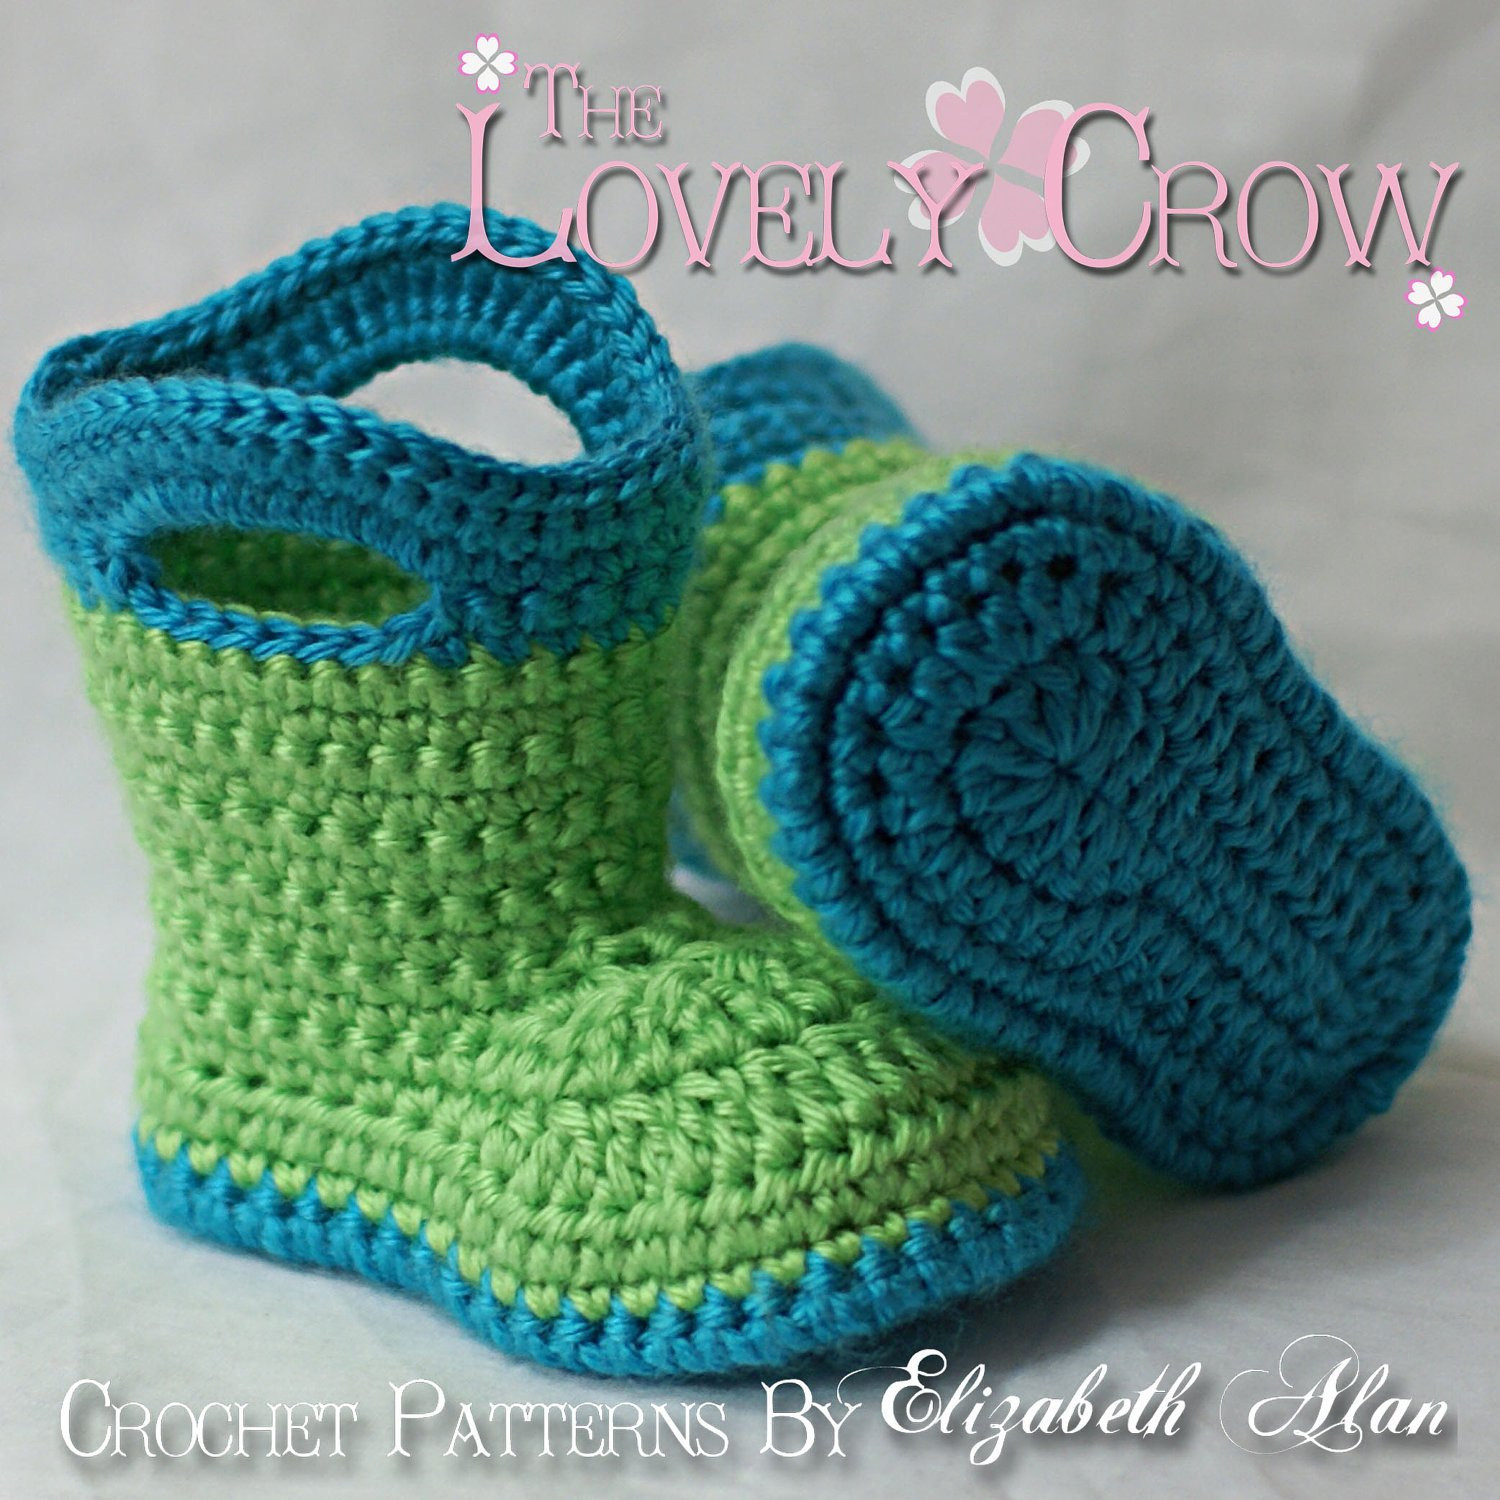 Newborn Crochet Patterns Elegant Baby Crochet Pattern Baby for Baby Goshalosh Boots 4 Sizes Of Incredible 41 Ideas Newborn Crochet Patterns